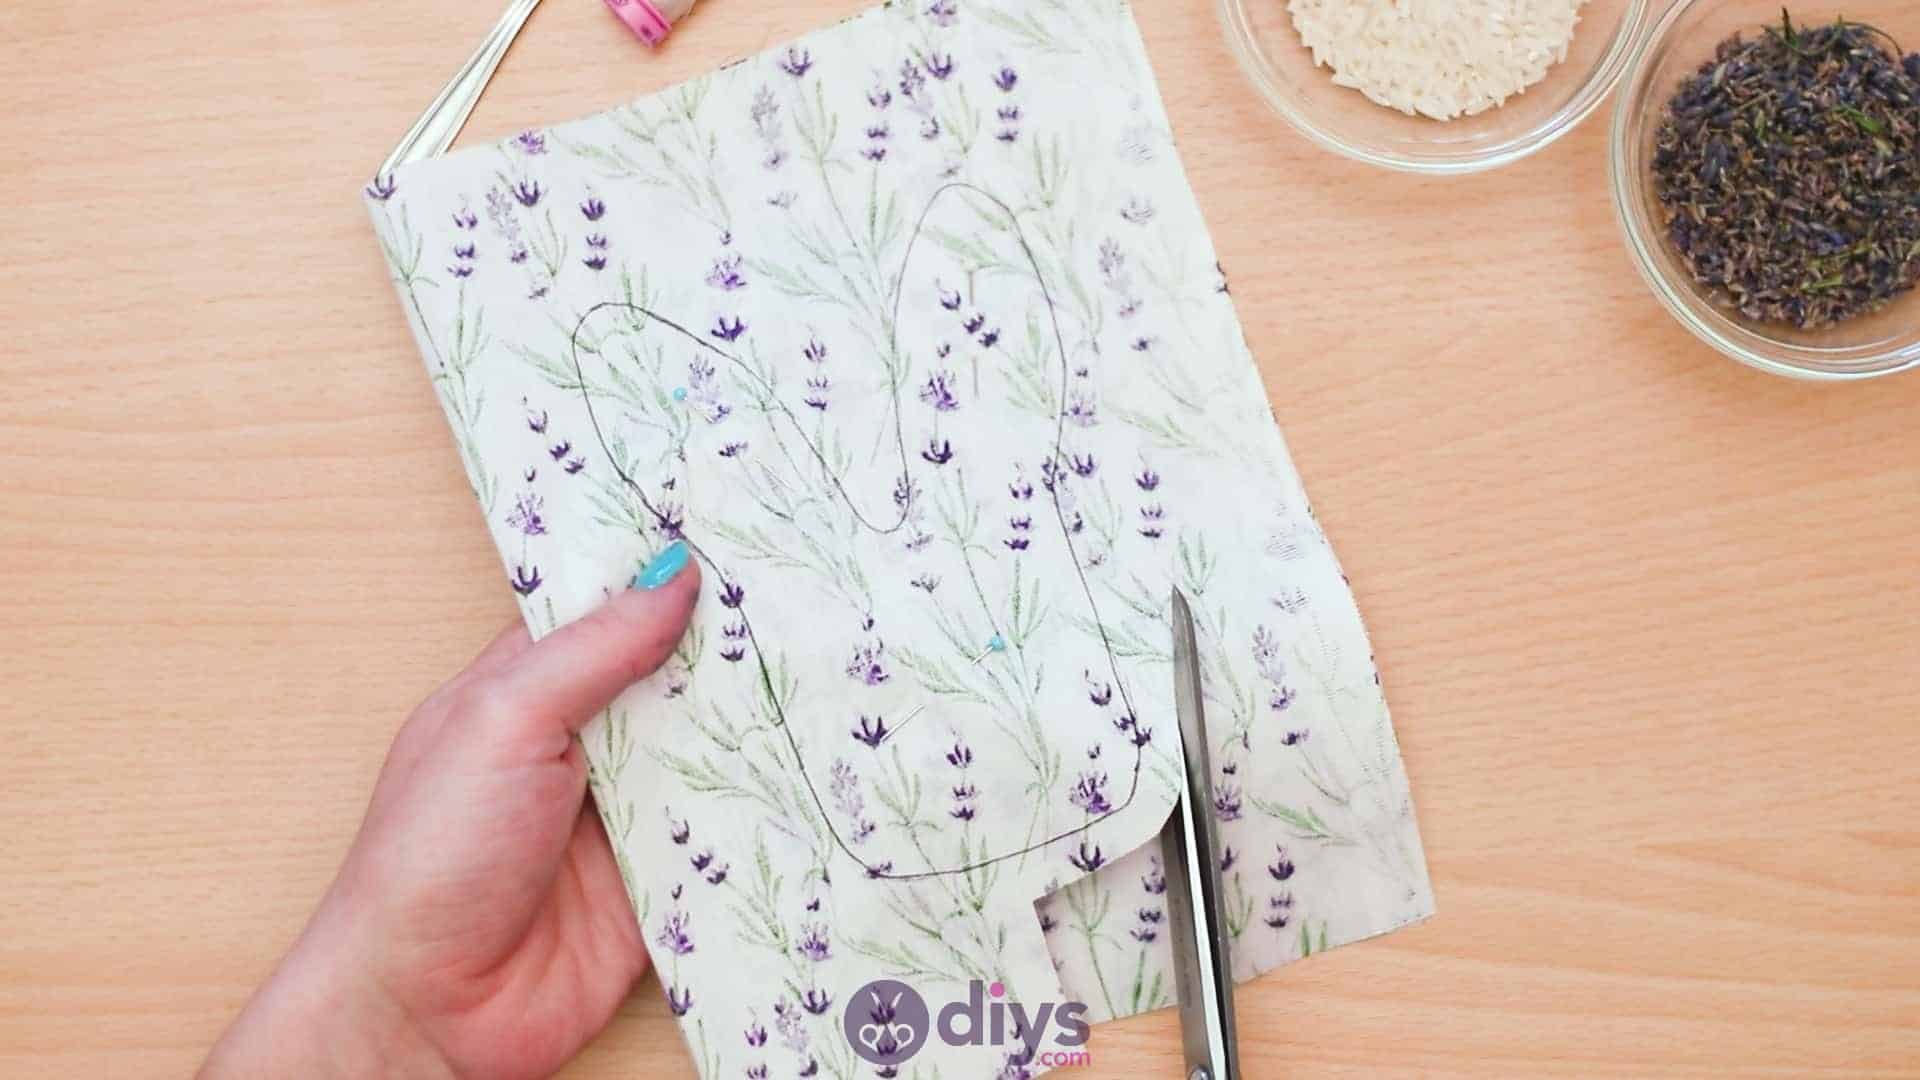 Bunny lavender bags step 4b